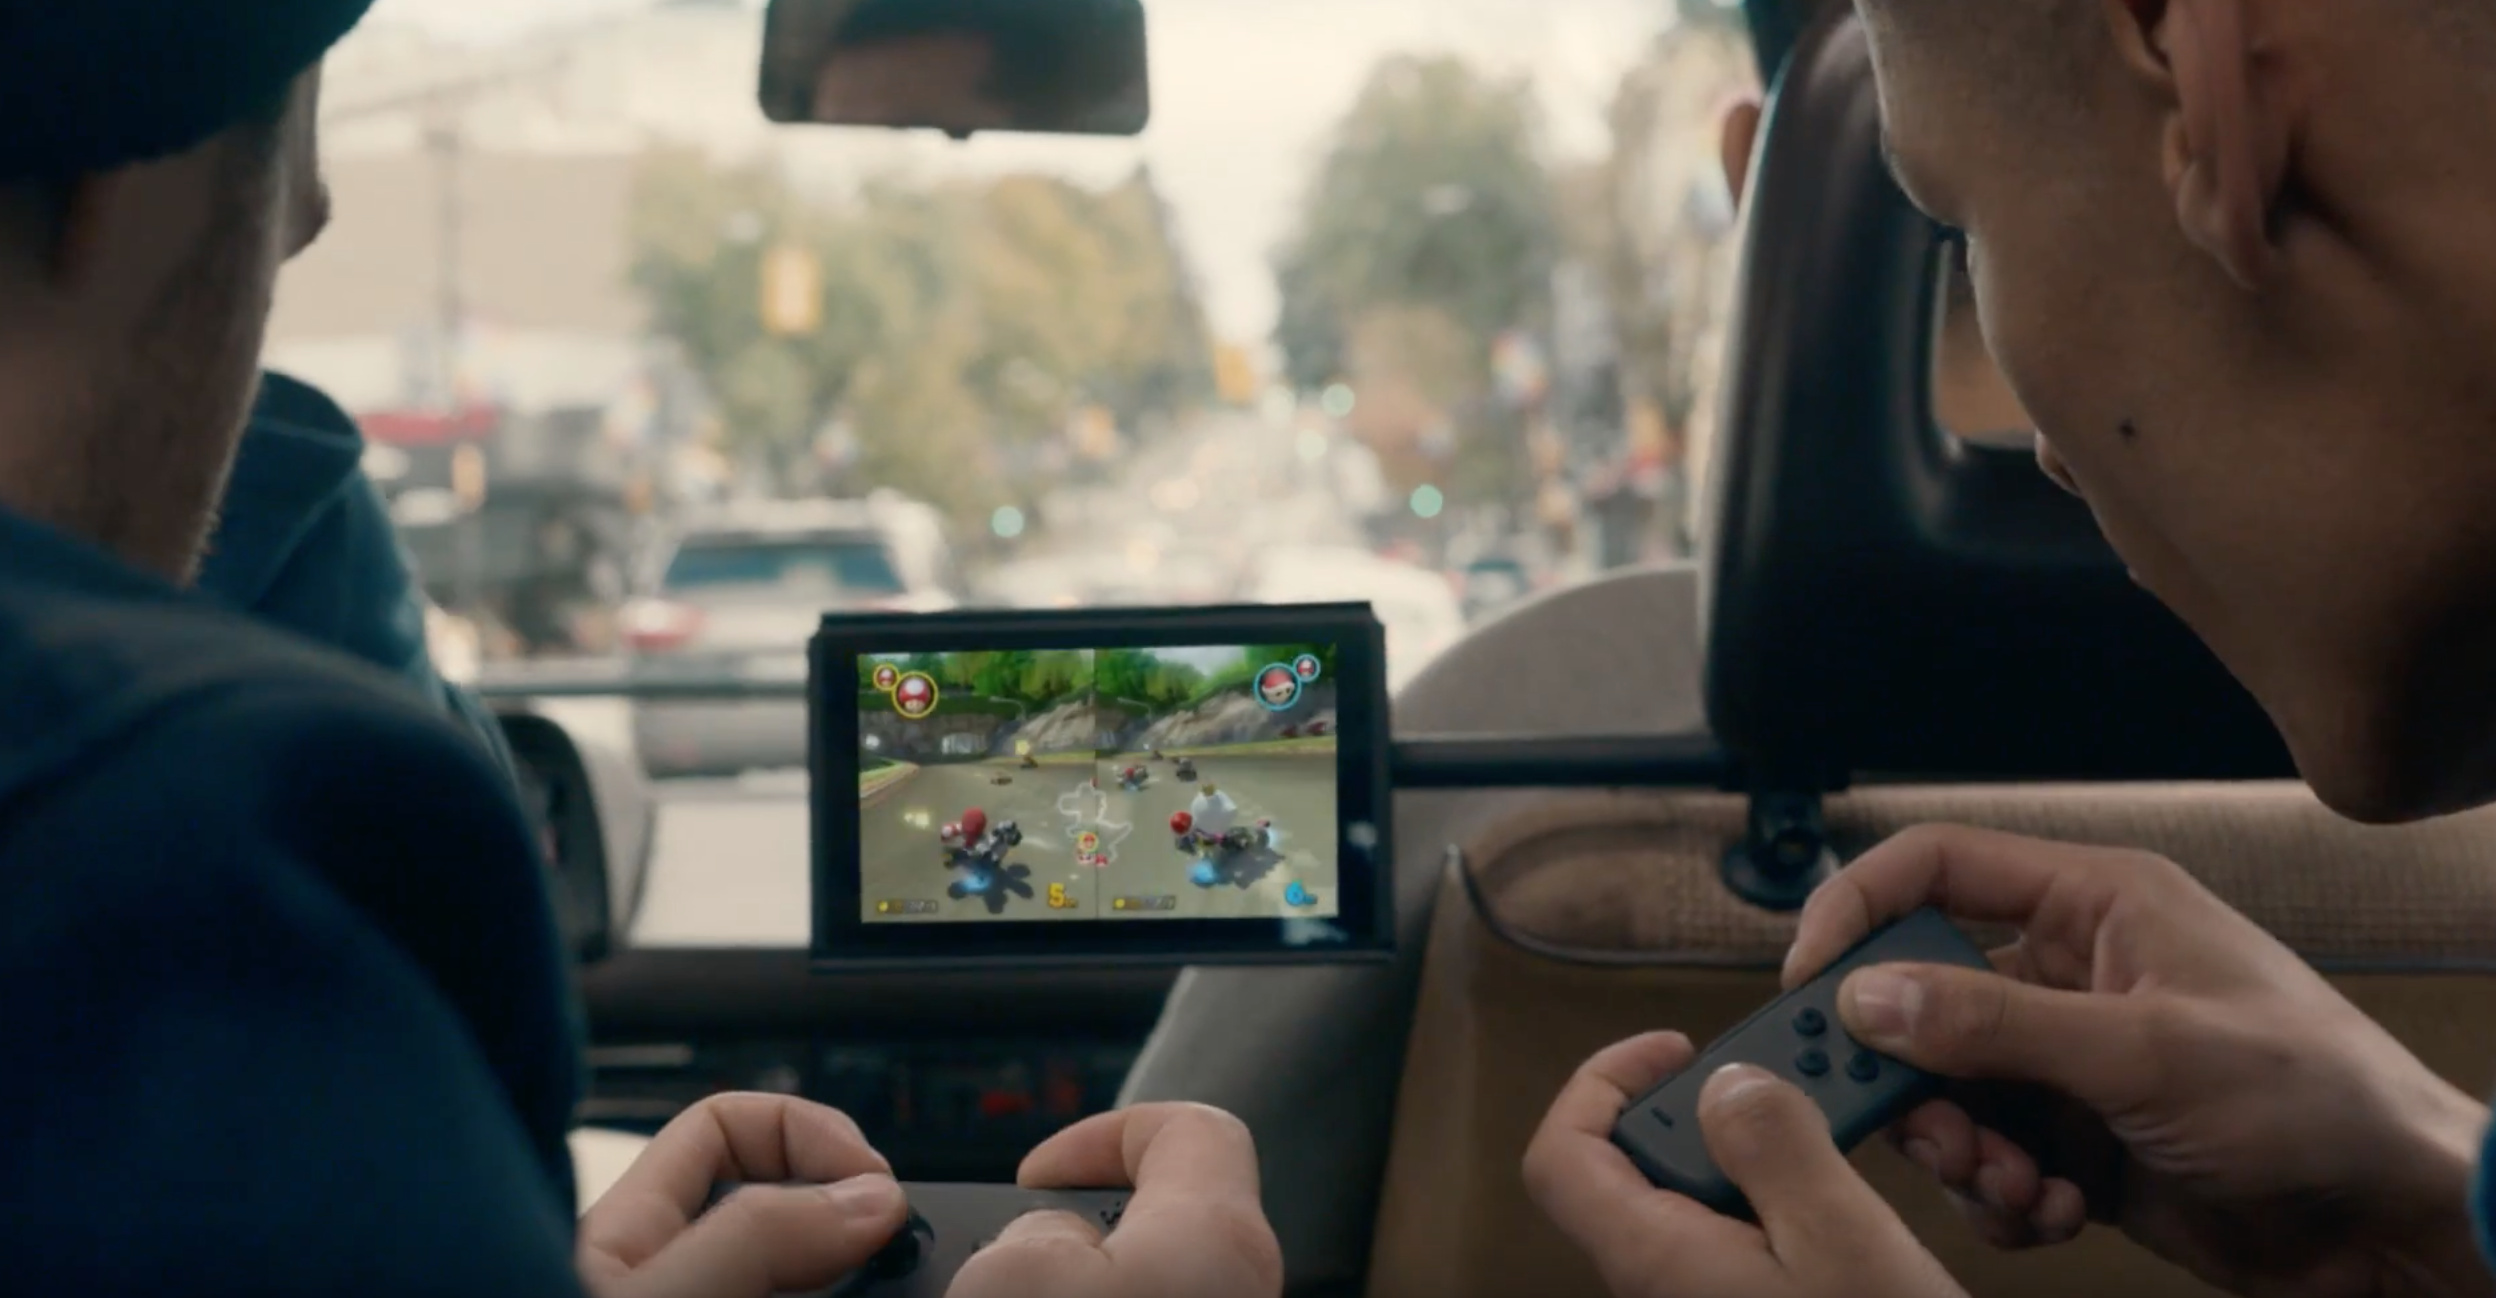 Sadly we didn't have Mario Kart 8 Deluxe, or the weird bracket, or anyone else in the back seat of the car